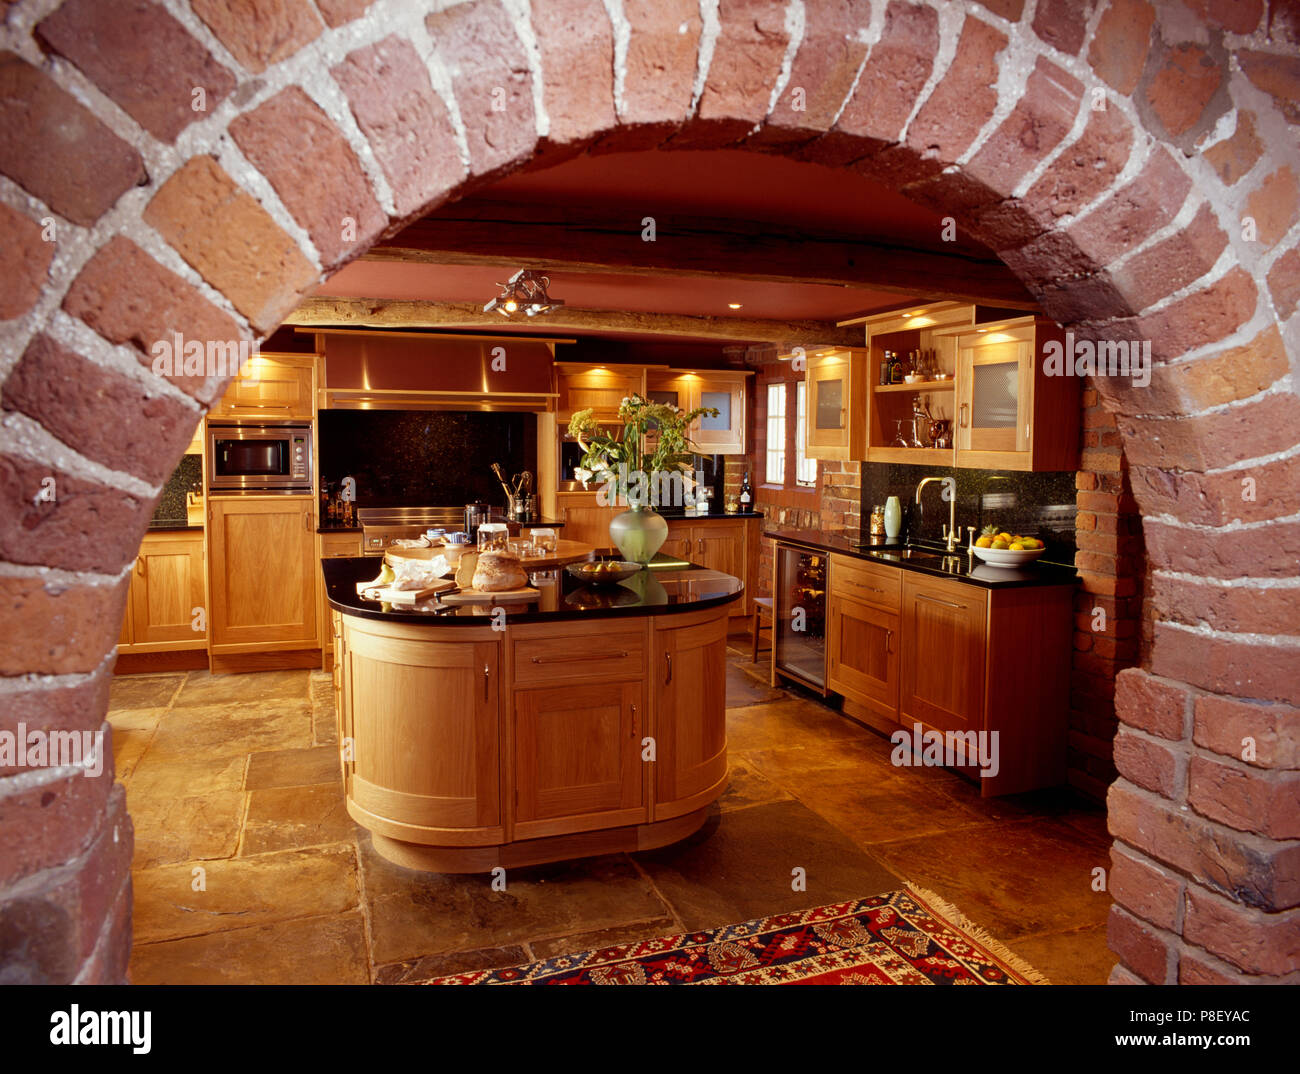 View Through Brick Arch Of Traditional Wooden Kitchen With Oval Island Unit And Stone Flooring Stock Photo Alamy